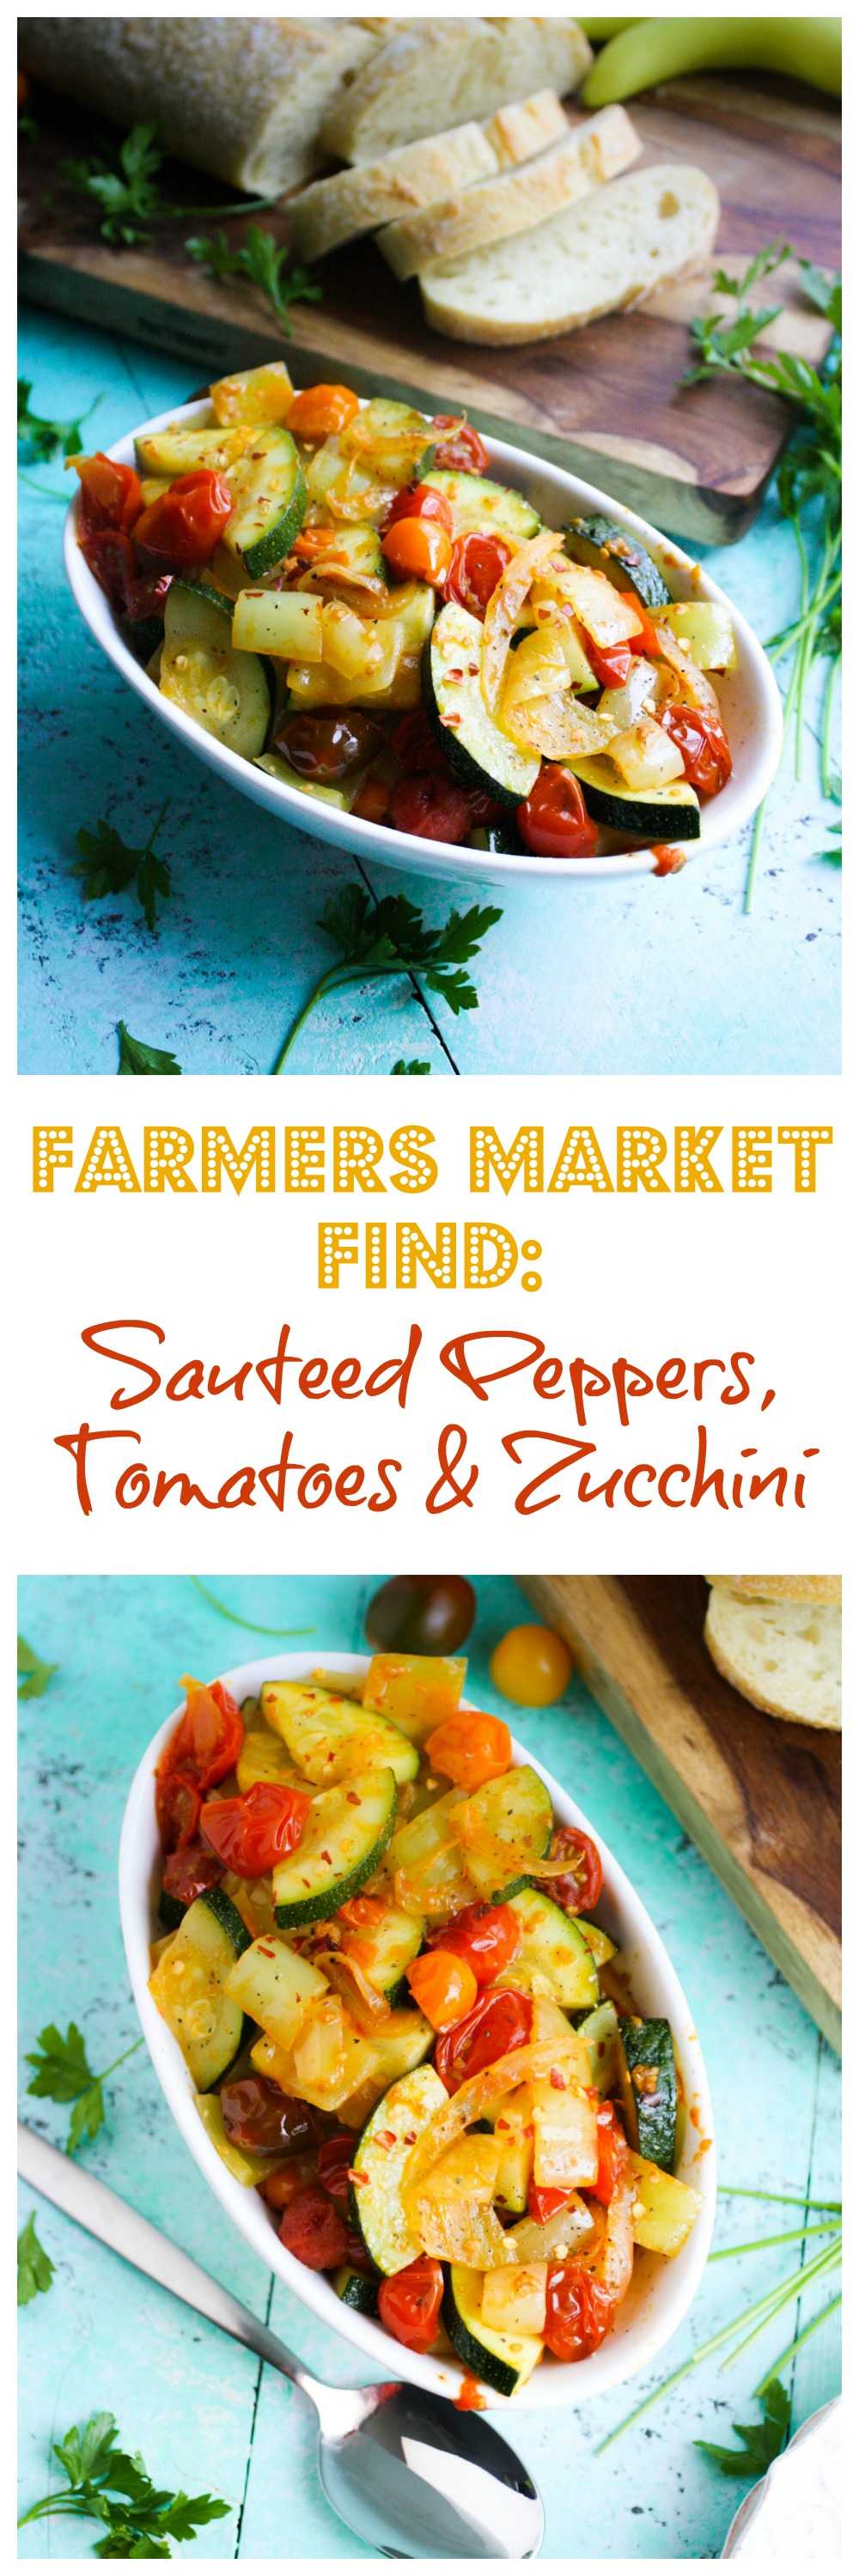 Farmers Market Find: Sautéed Peppers, Tomatoes & Zucchini is a flavorful side dish or appetizer for the season. Farmers Market Find: Sautéed Peppers, Tomatoes & Zucchini is a side dish you'll love for the summer months.